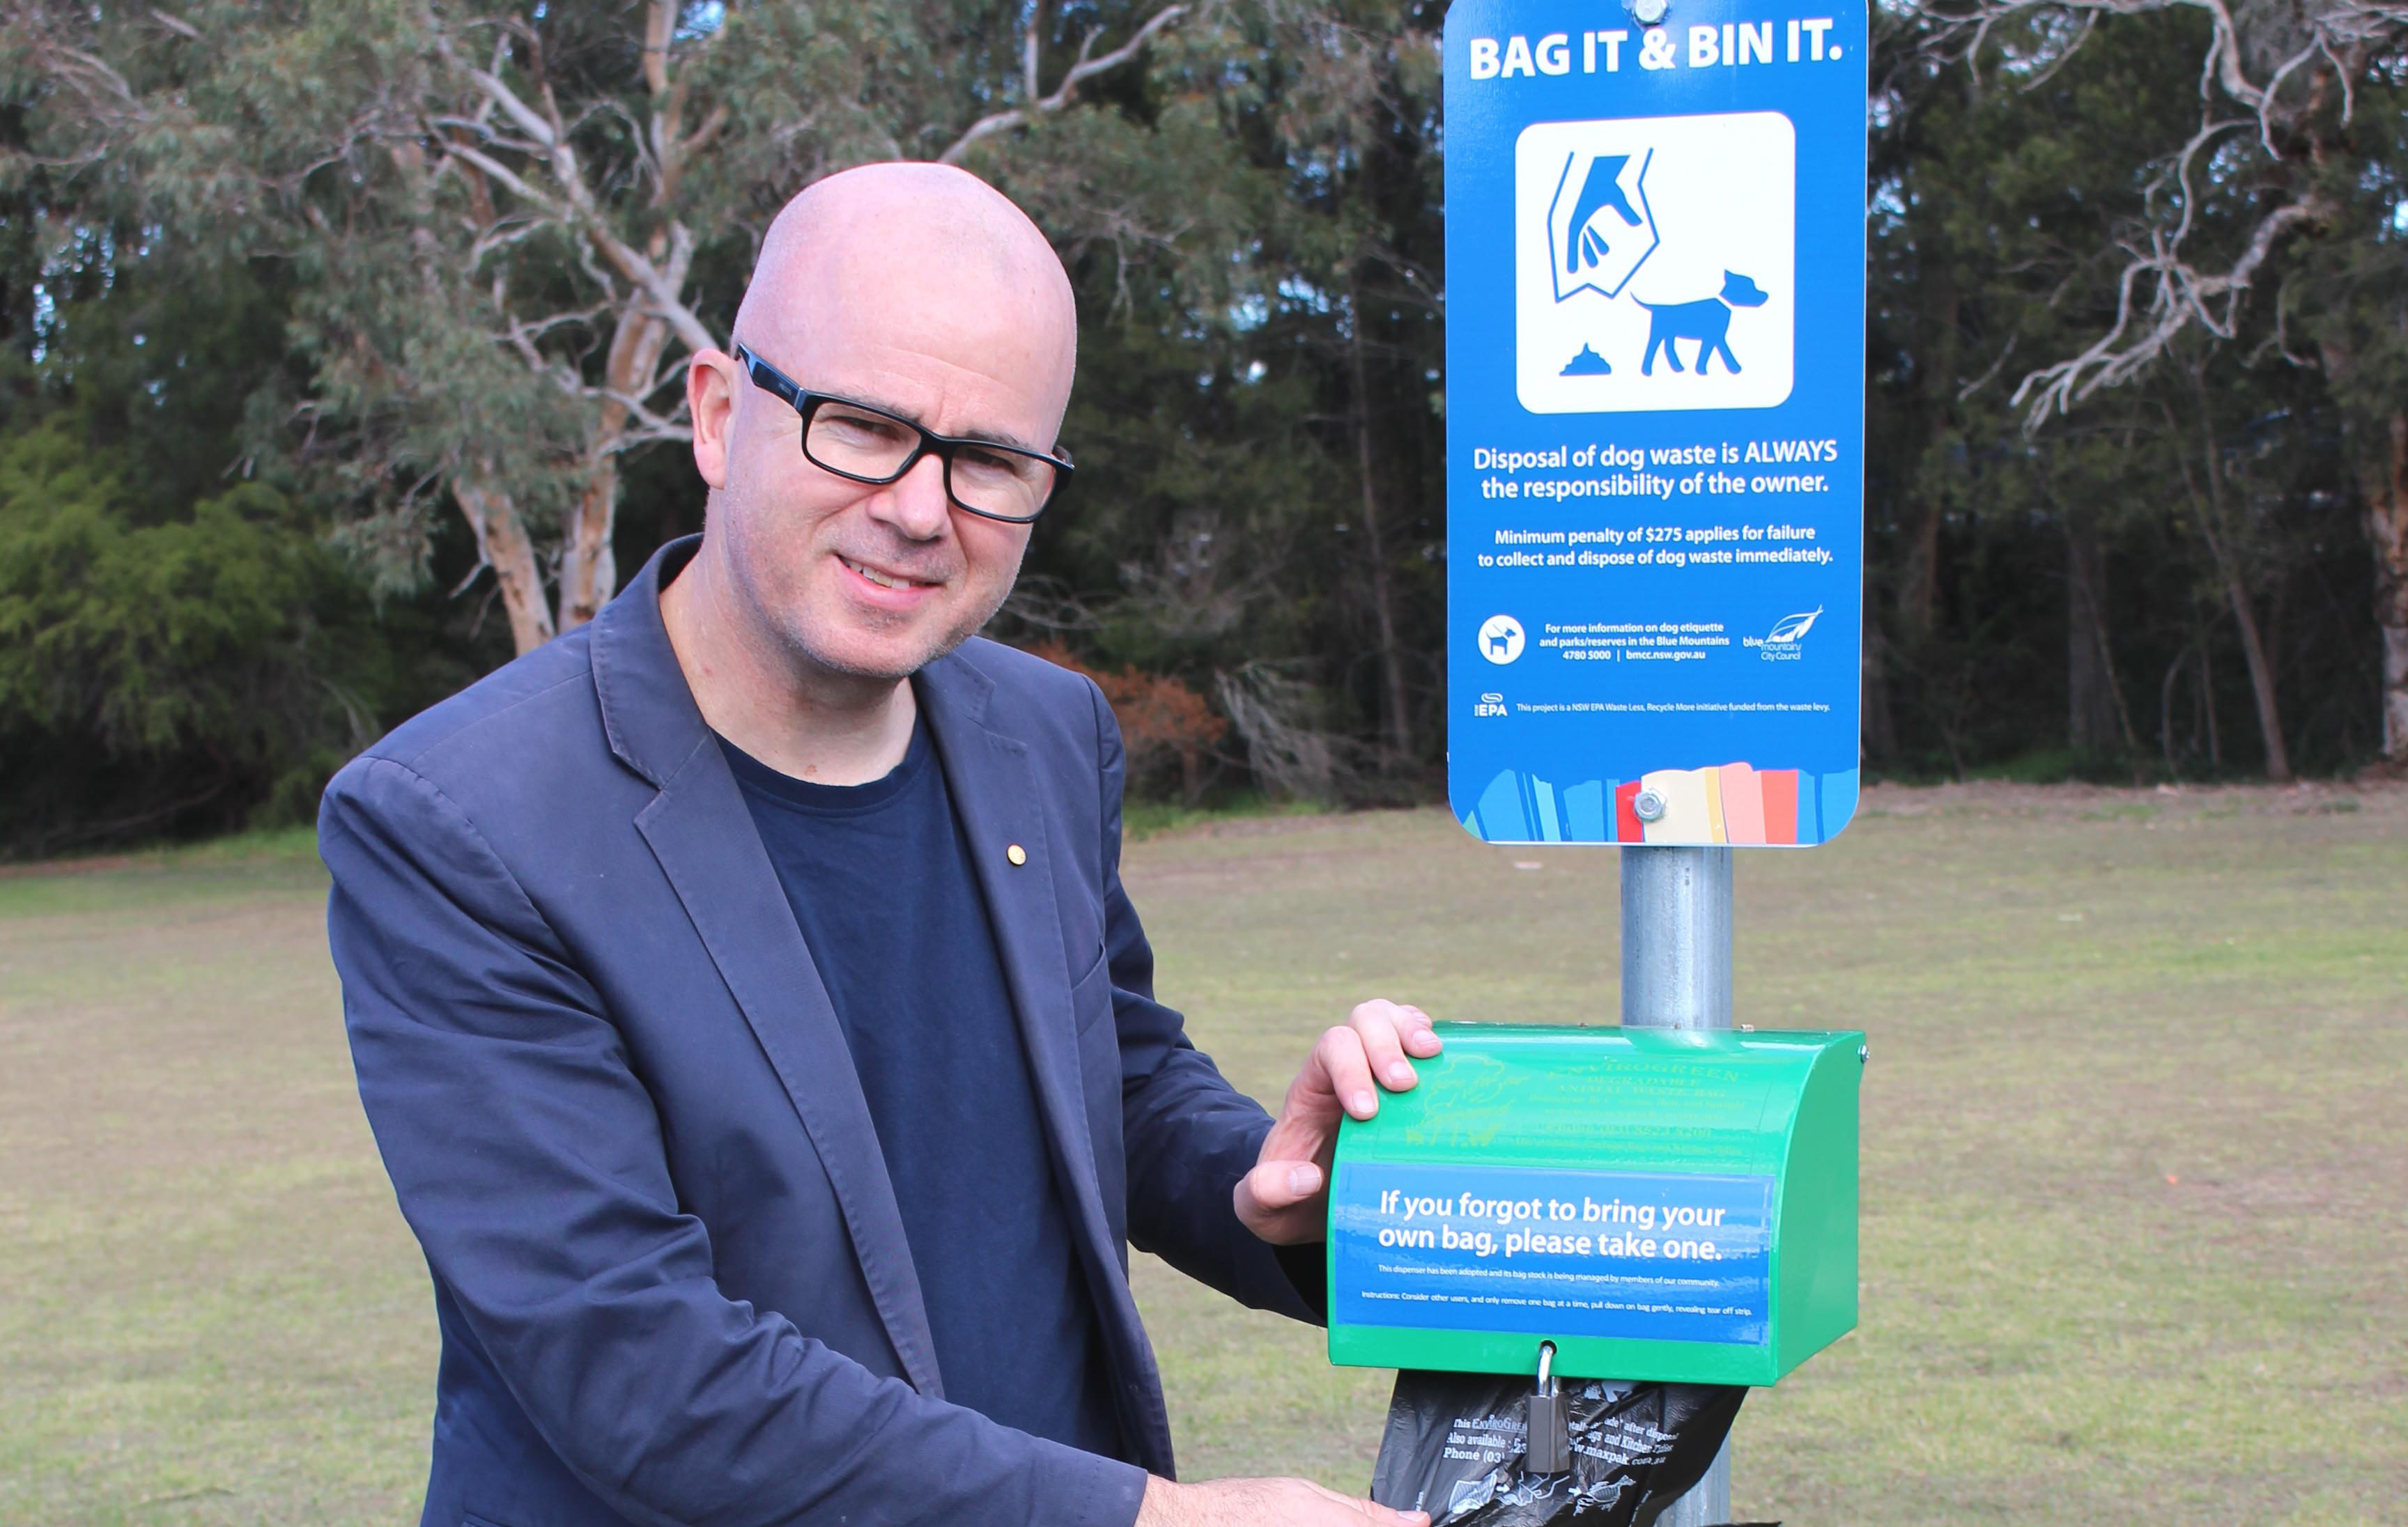 Mayor, Cr Mark Greenhill supports the community/Council partnership to install dog waste bag dispensers in local parks, sportsgrounds and off leash areas